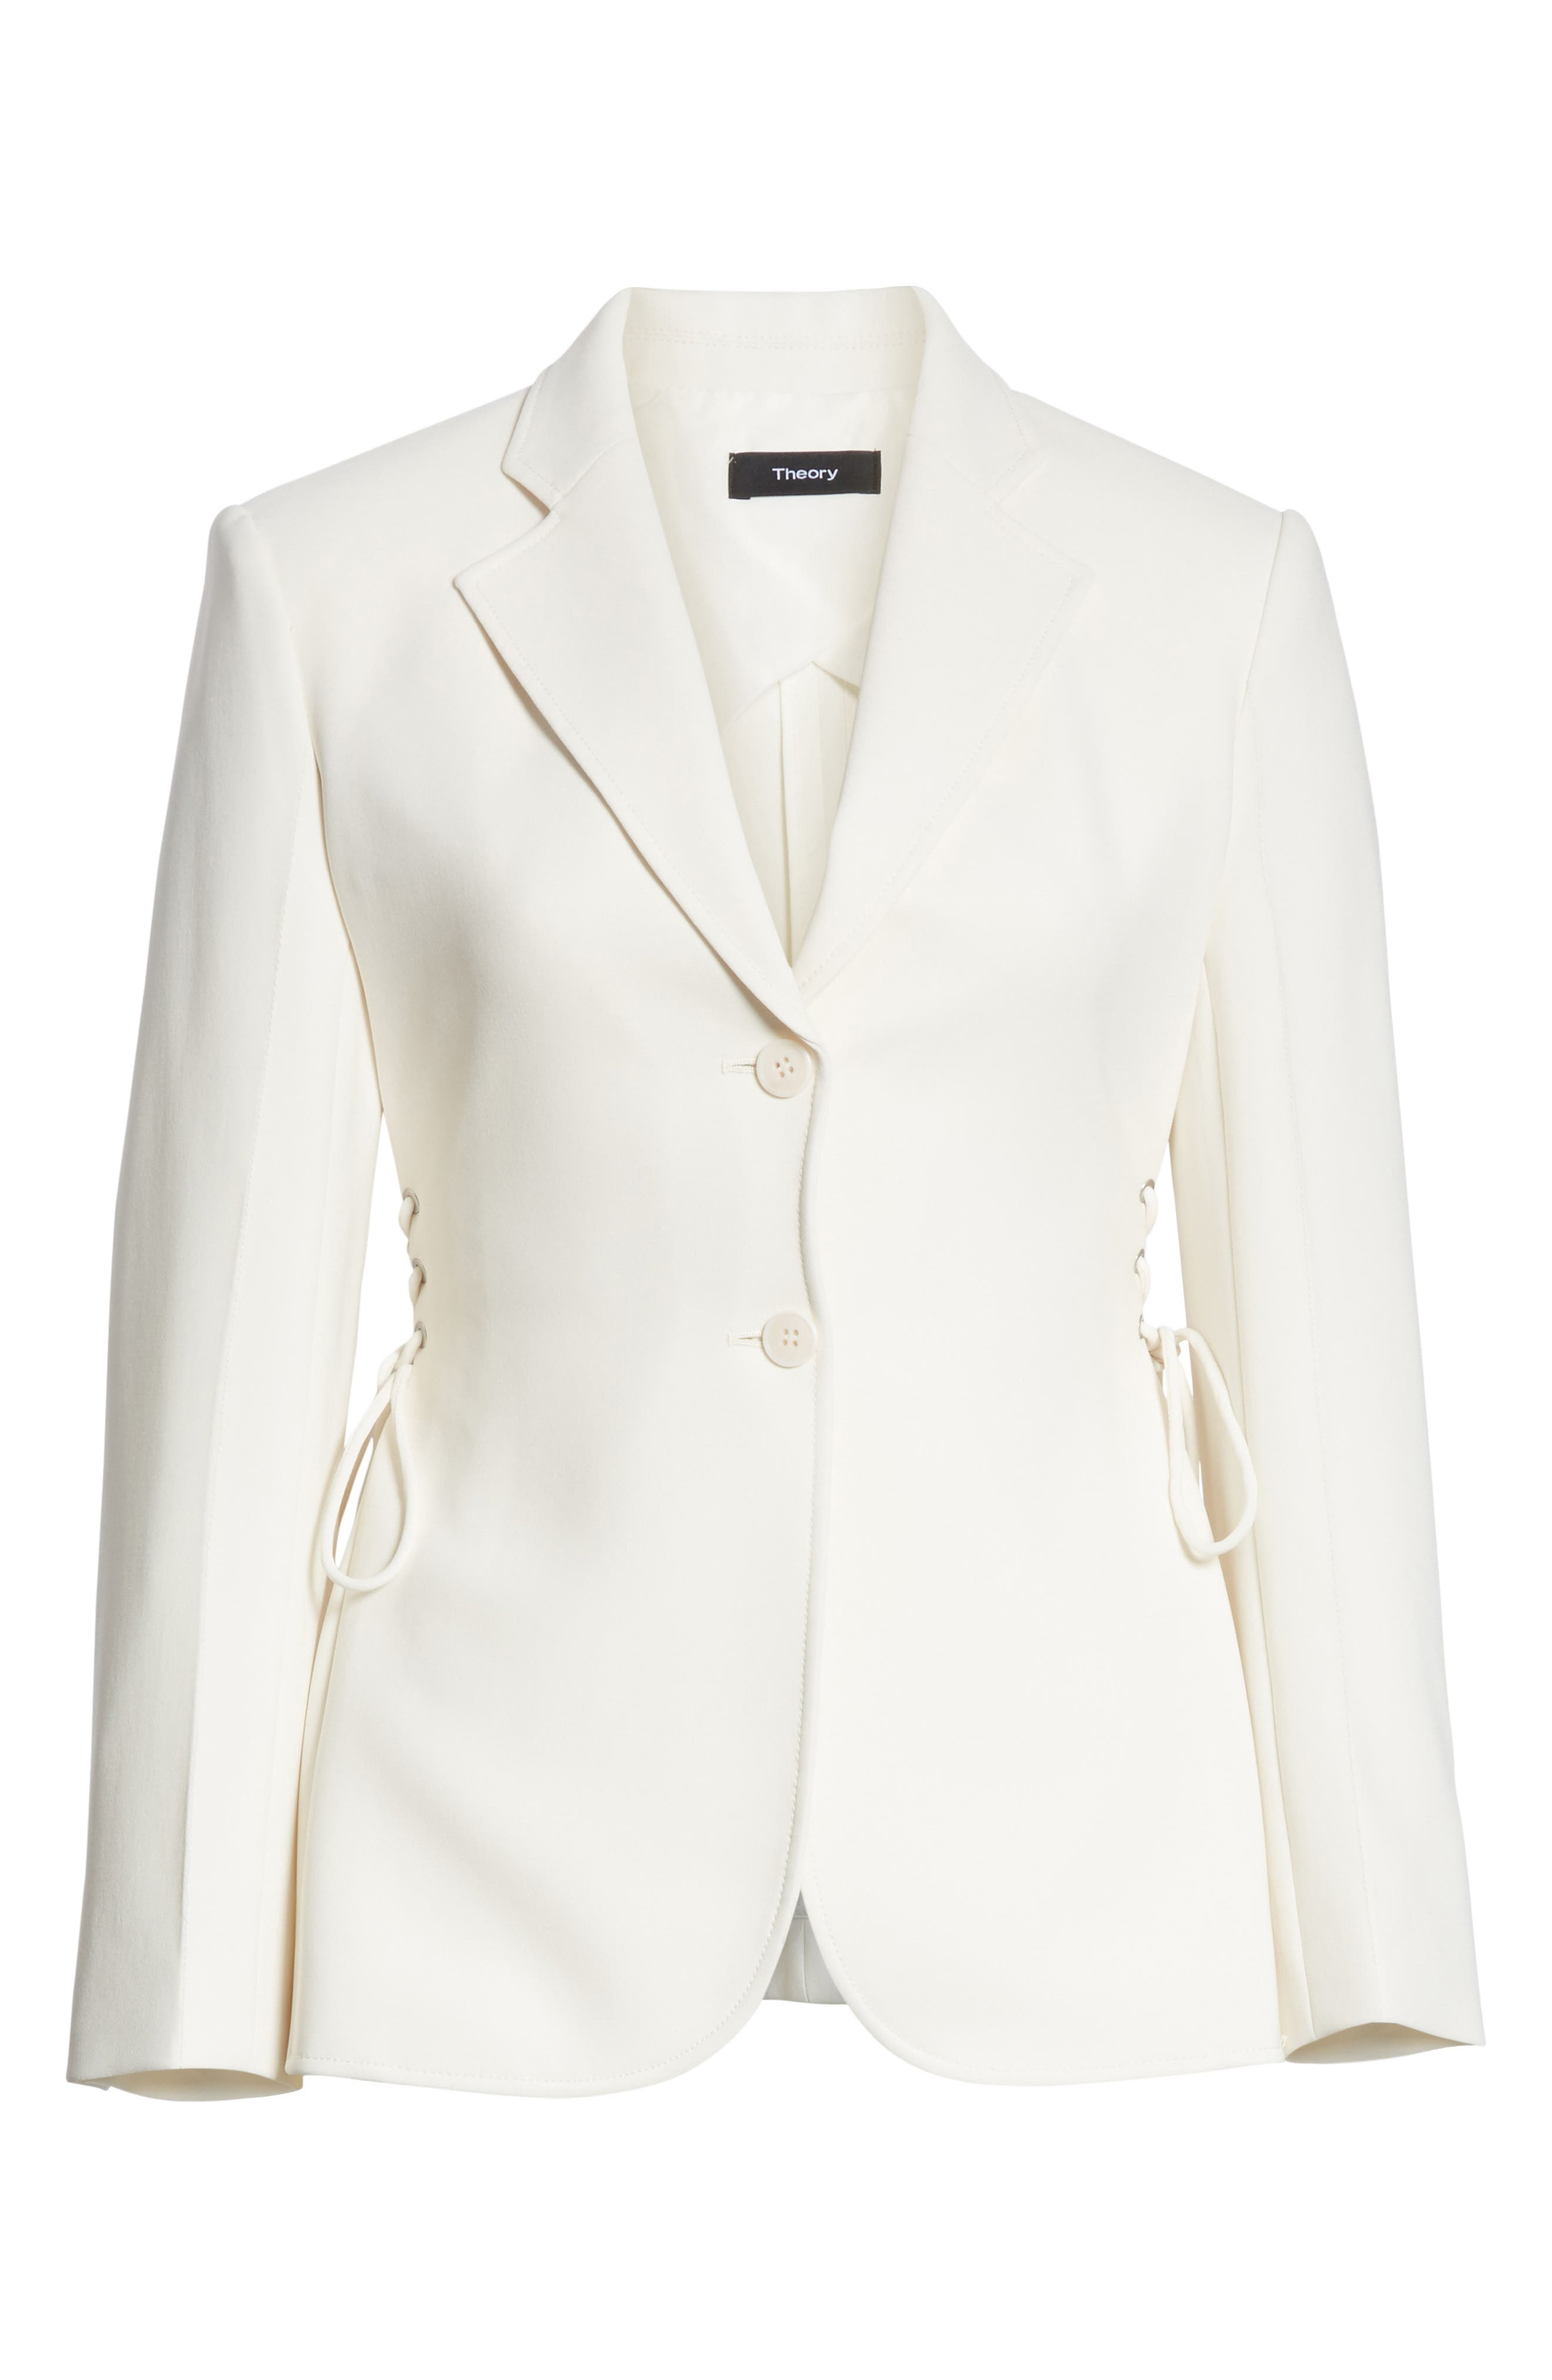 Admiral Crepe Lace-Up Suit Jacket,                             Alternate thumbnail 10, color,